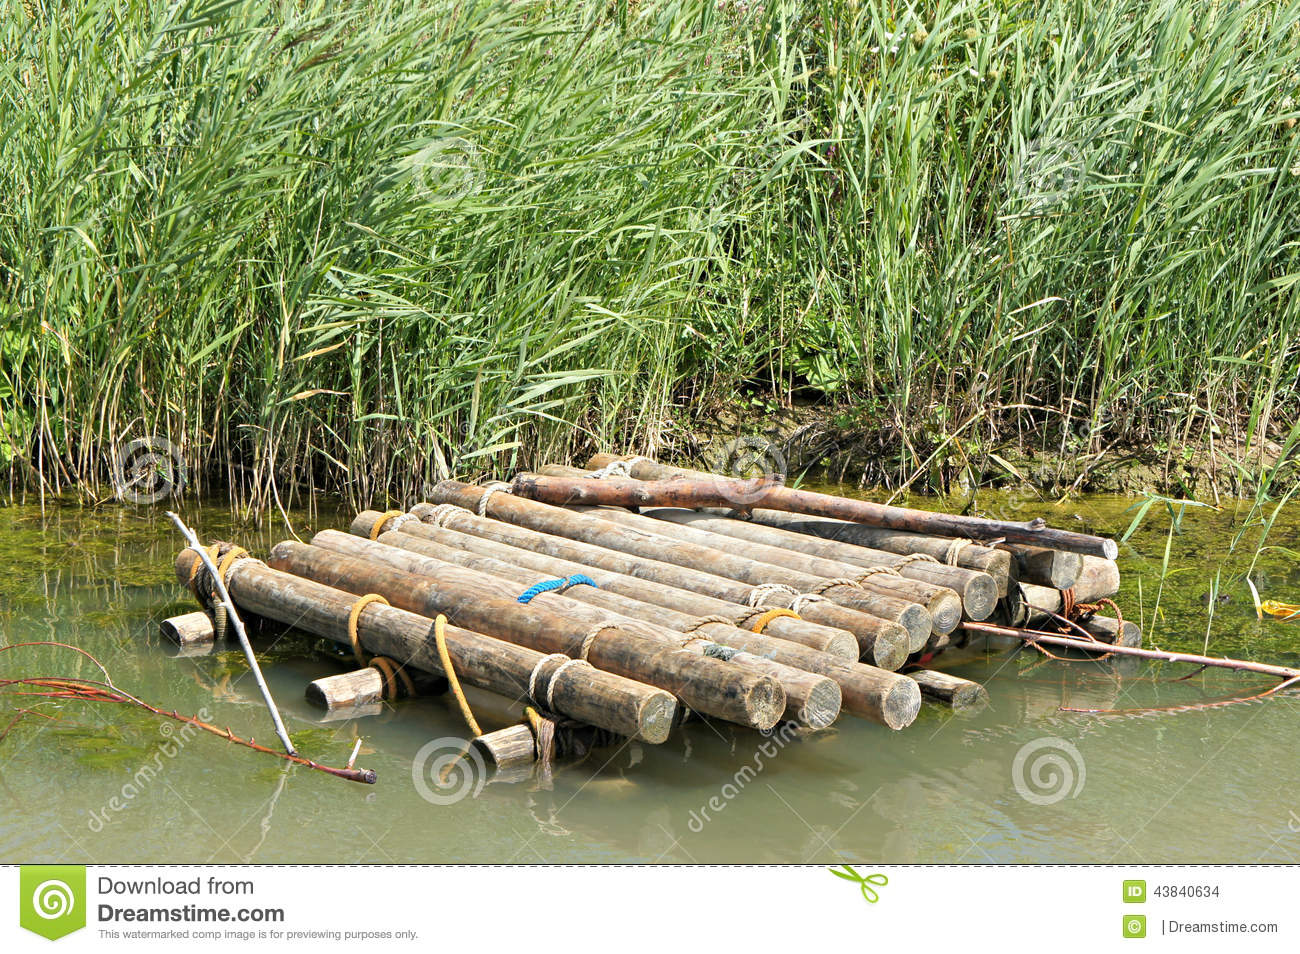 Wooden raft in the water stock photo. Image of boat, raft - 43840634